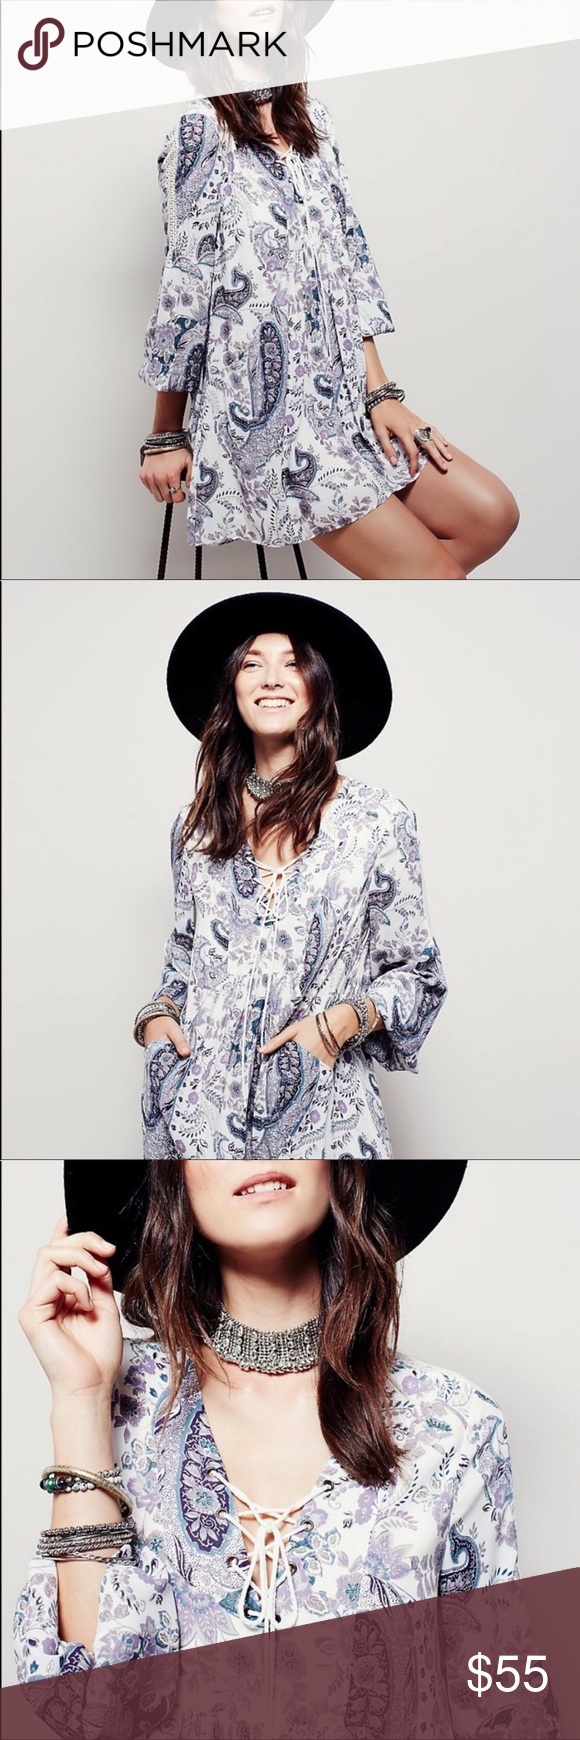 Free People Rain or Shine Dress Gorgeous loose fitting vintage inspired dress wi…